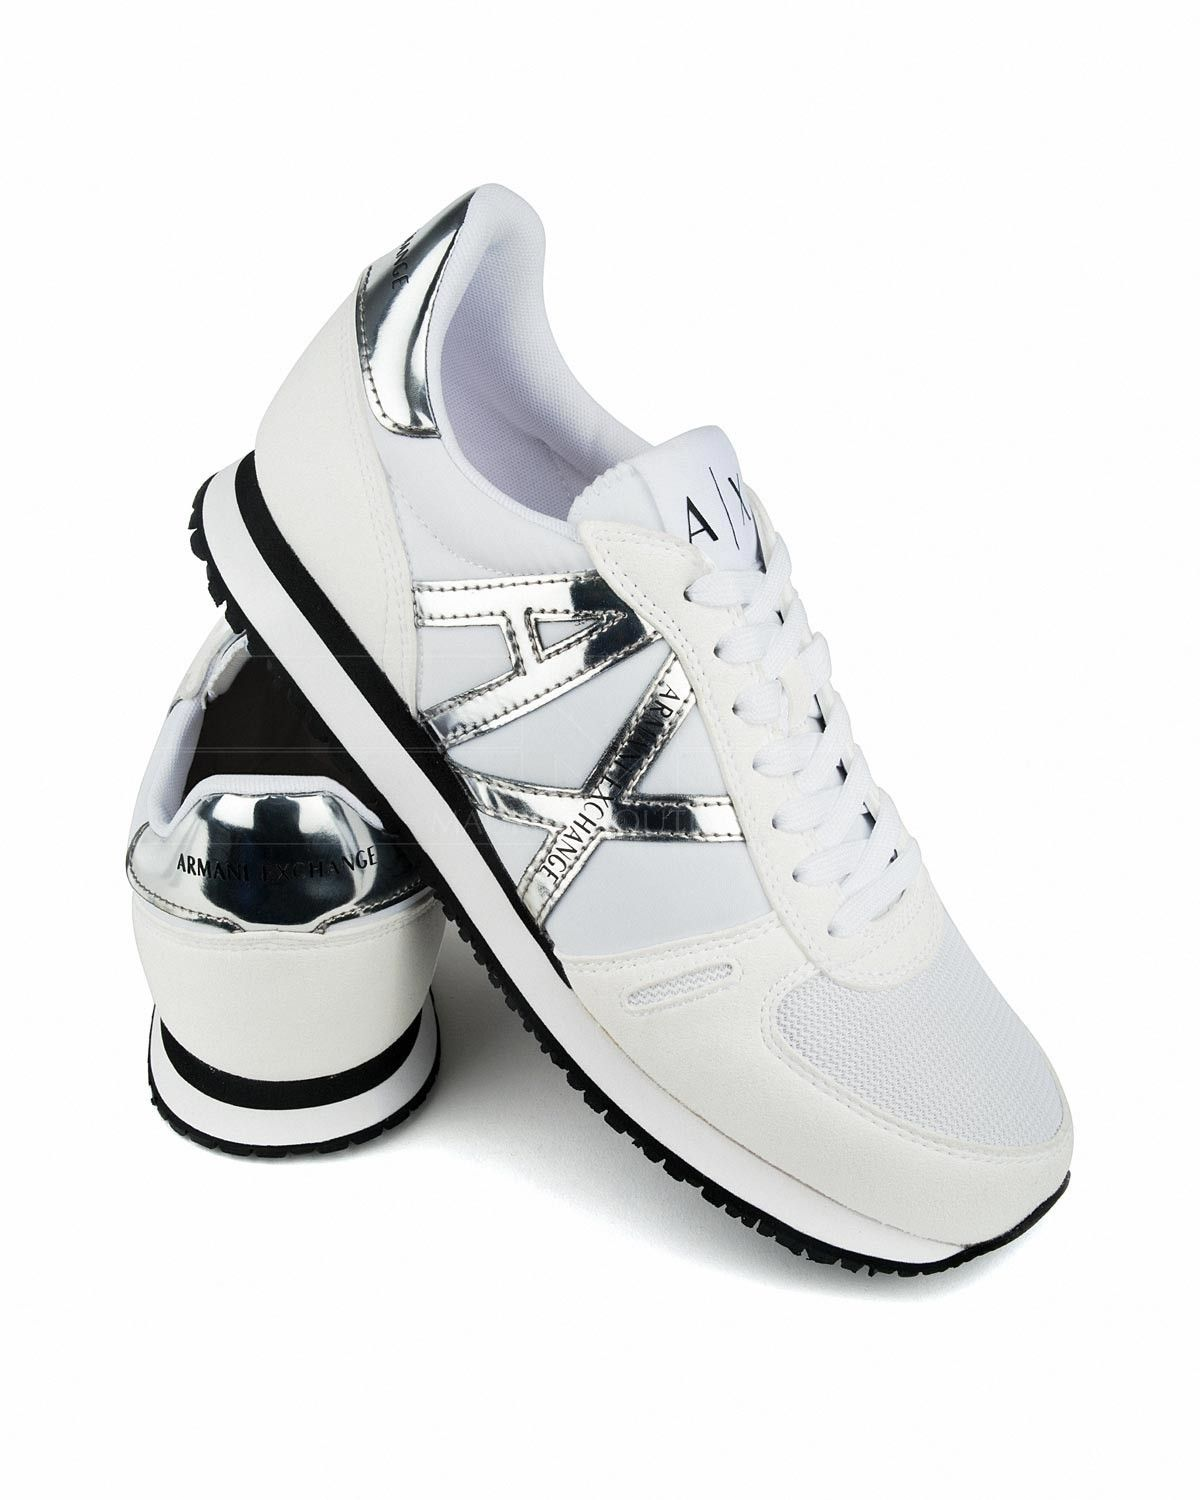 03ff54dc ARMANI EXCHANGE © Men's Shoes ✶ White | BEST PRICE Zapatos Armani,  Coleccion 2017,